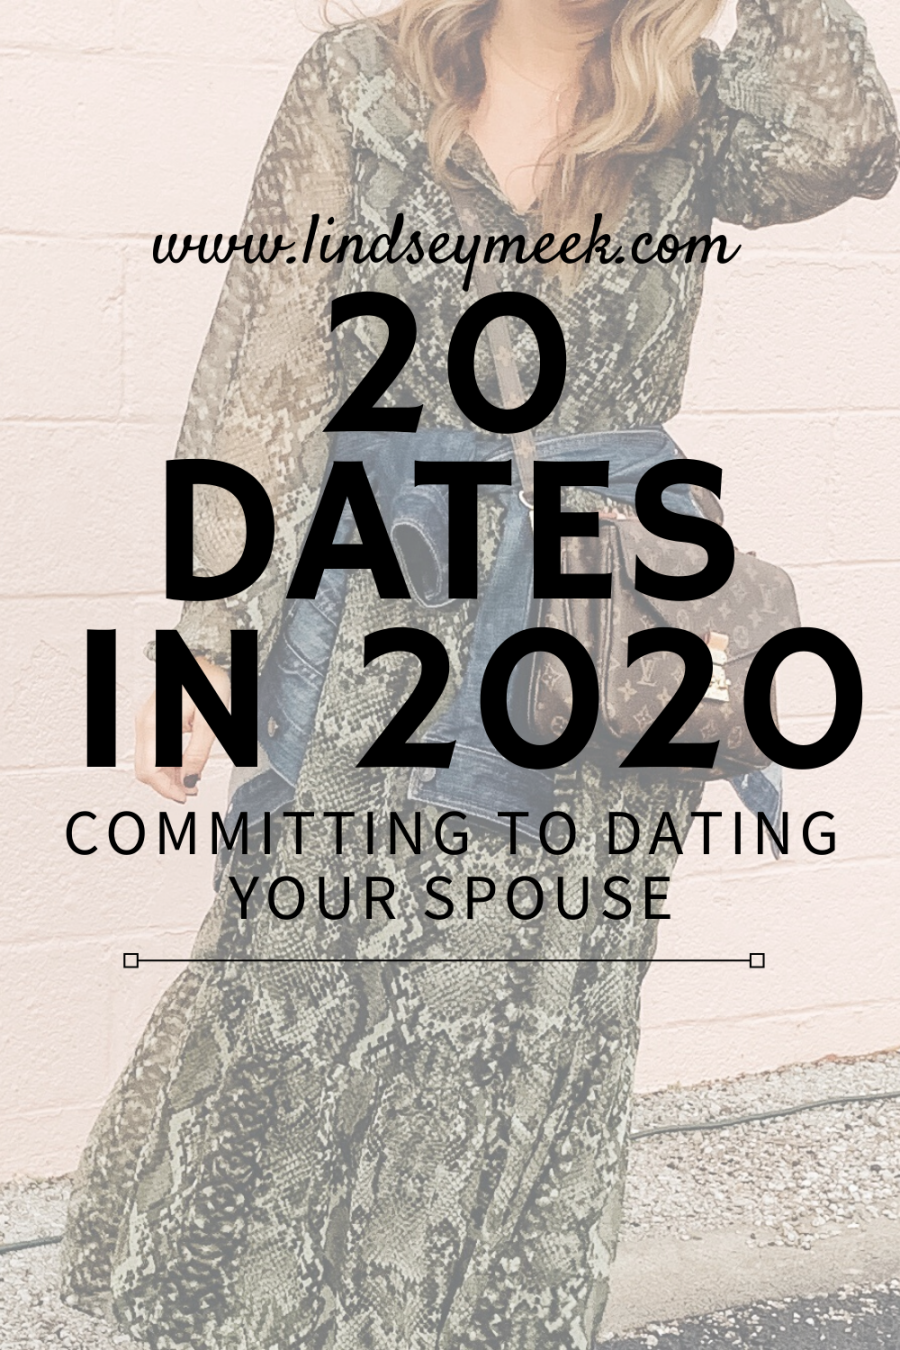 Date your spouse, date night, date night style, marriage